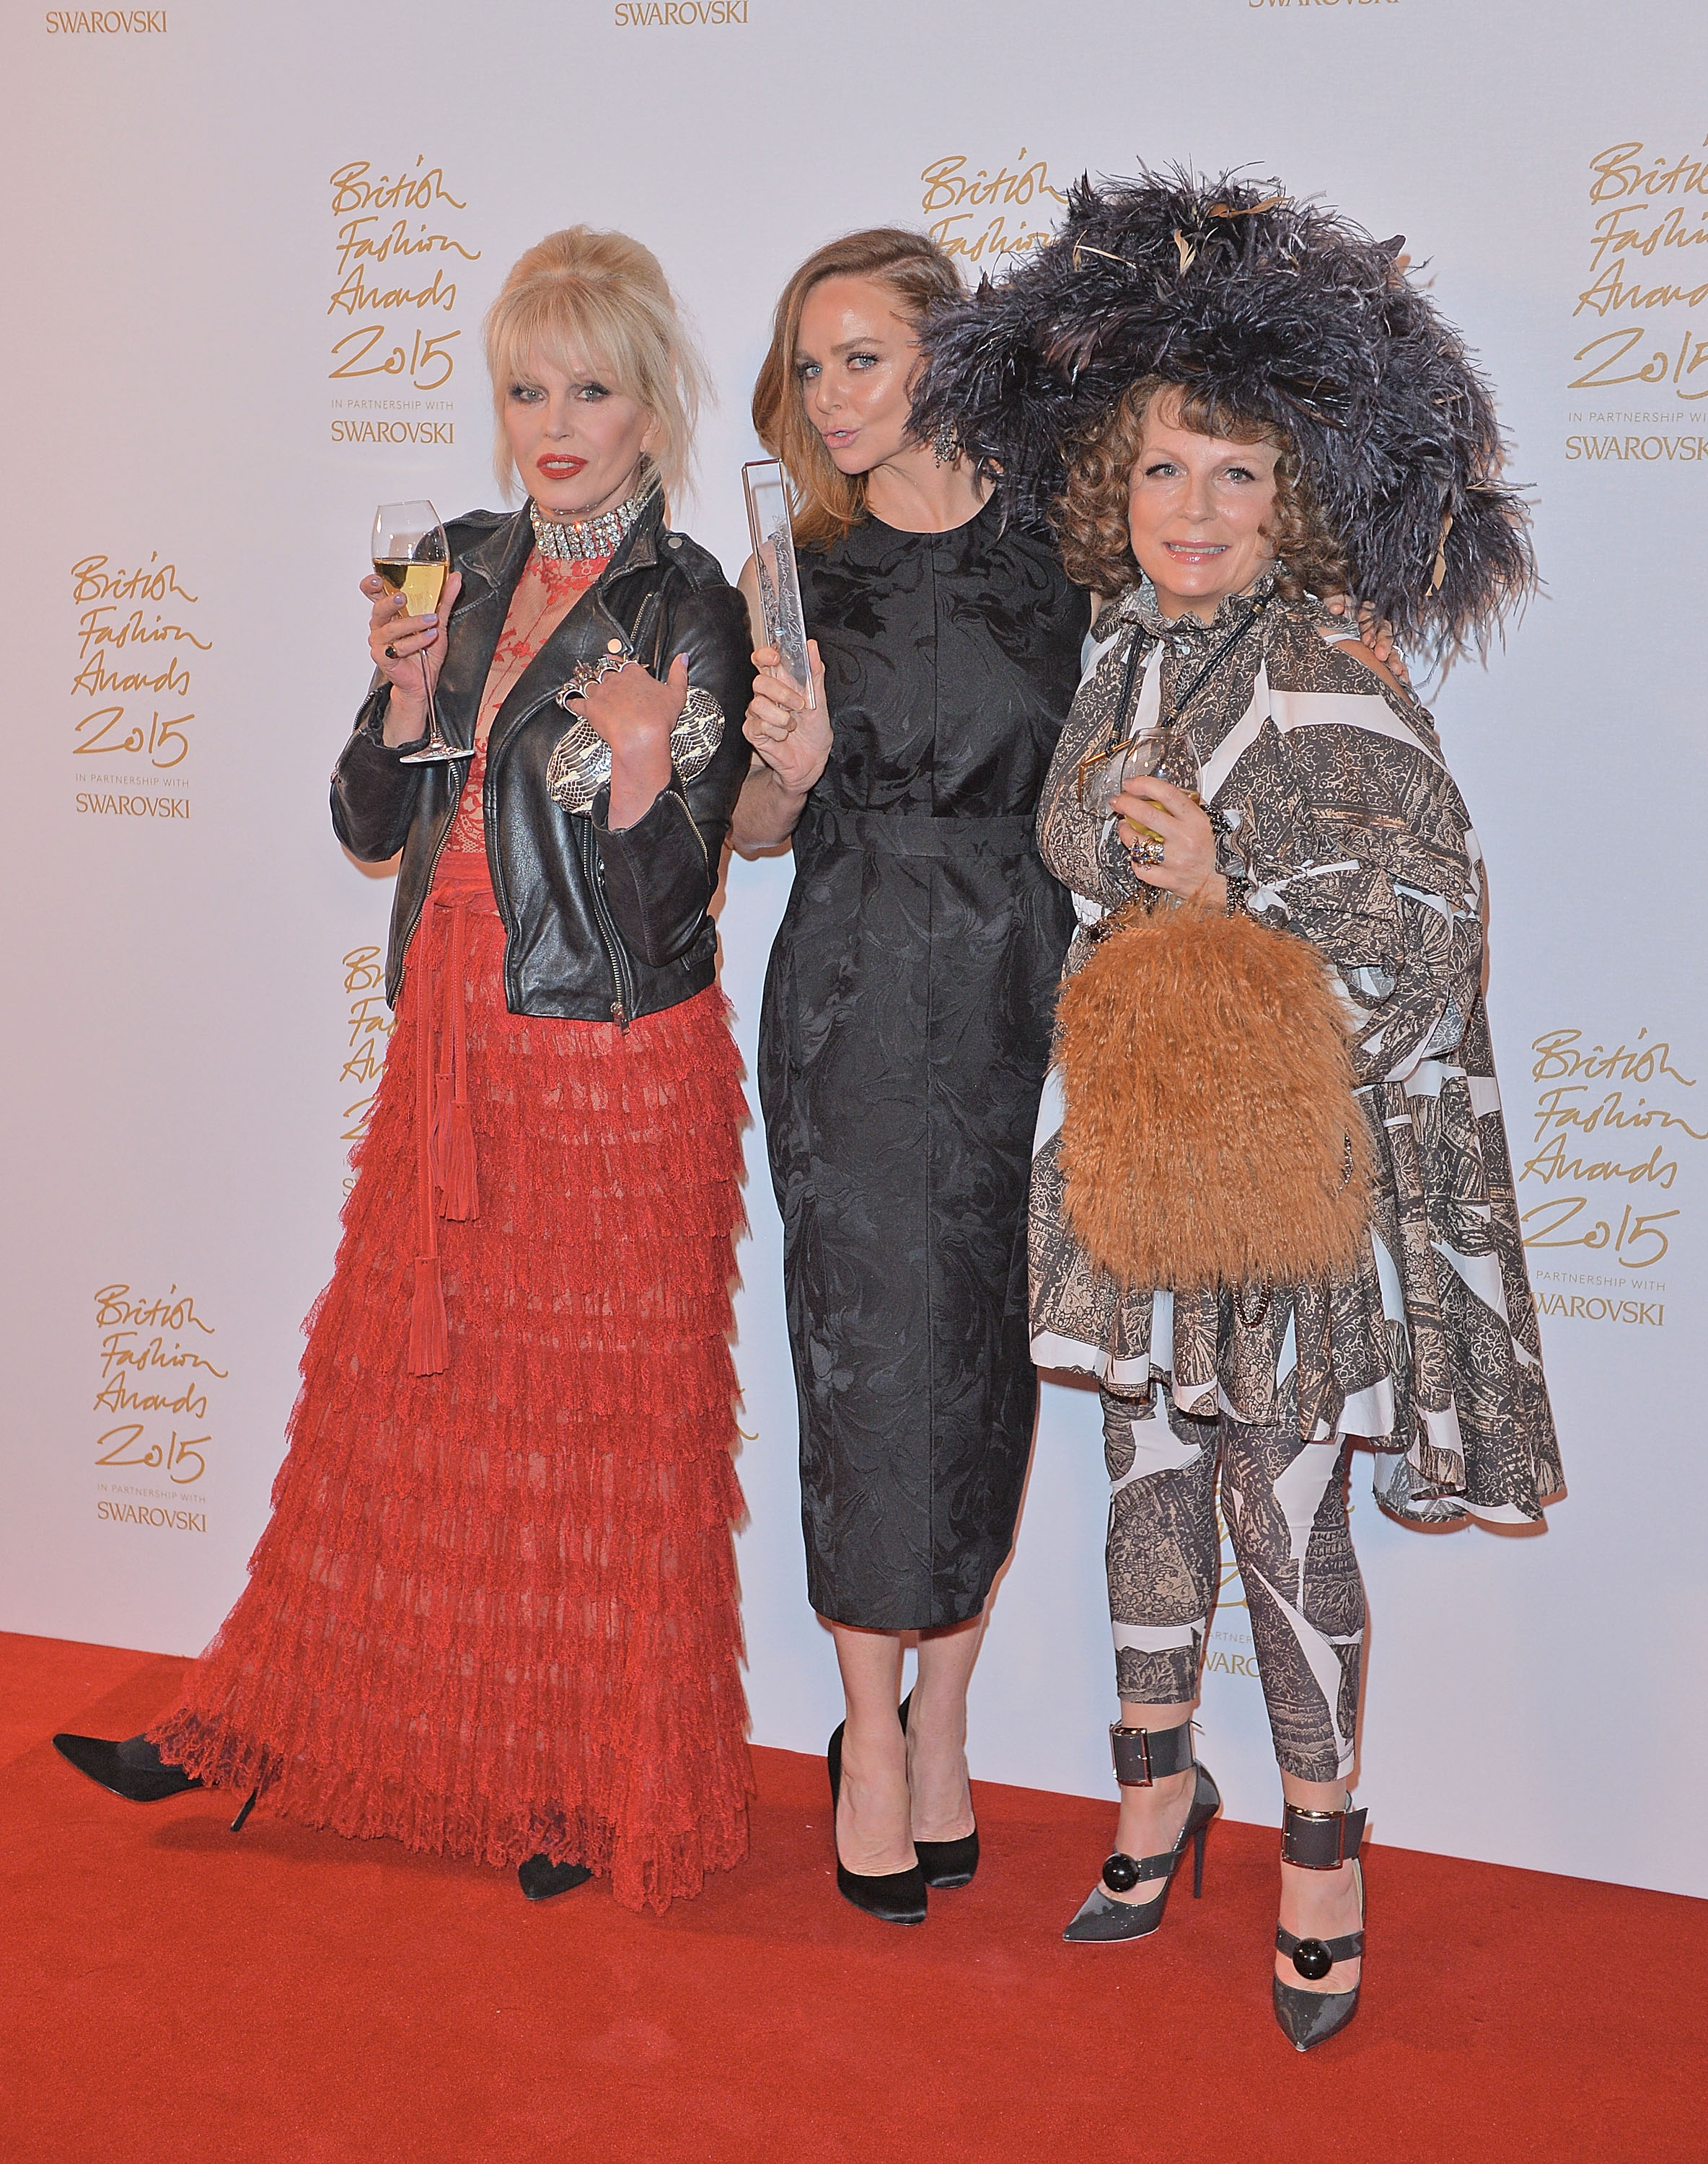 LONDON, ENGLAND - NOVEMBER 23: Joanna Lumley, Stella McCartney and Jennifer Saunders poses in the Winners Room at the British Fashion Awards 2015 at London Coliseum on November 23, 2015 in London, England. (Photo by Anthony Harvey/Getty Images)